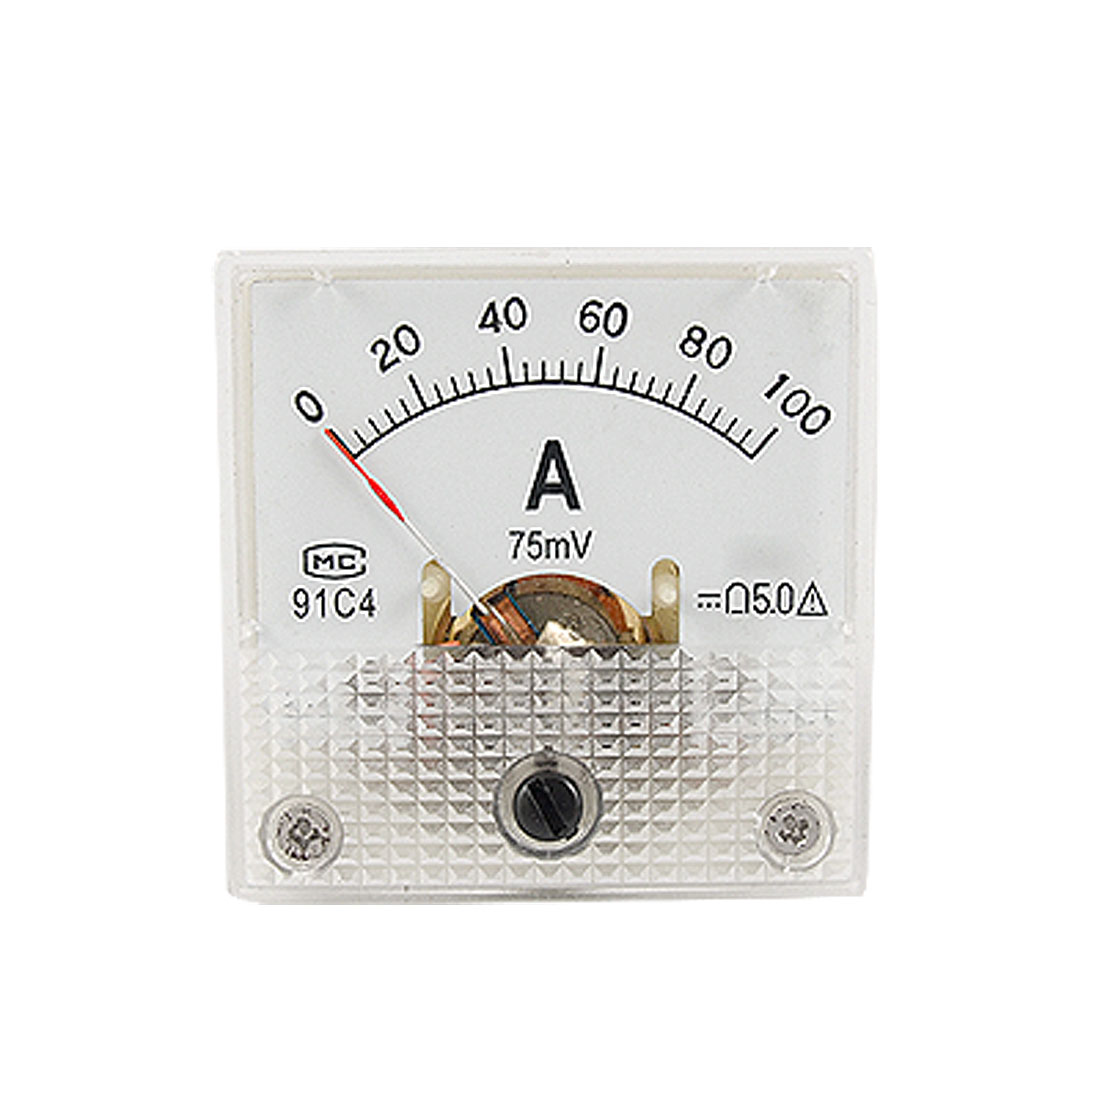 Miniature DC 0-100A Analog Panel Meter Ammeter 91C4